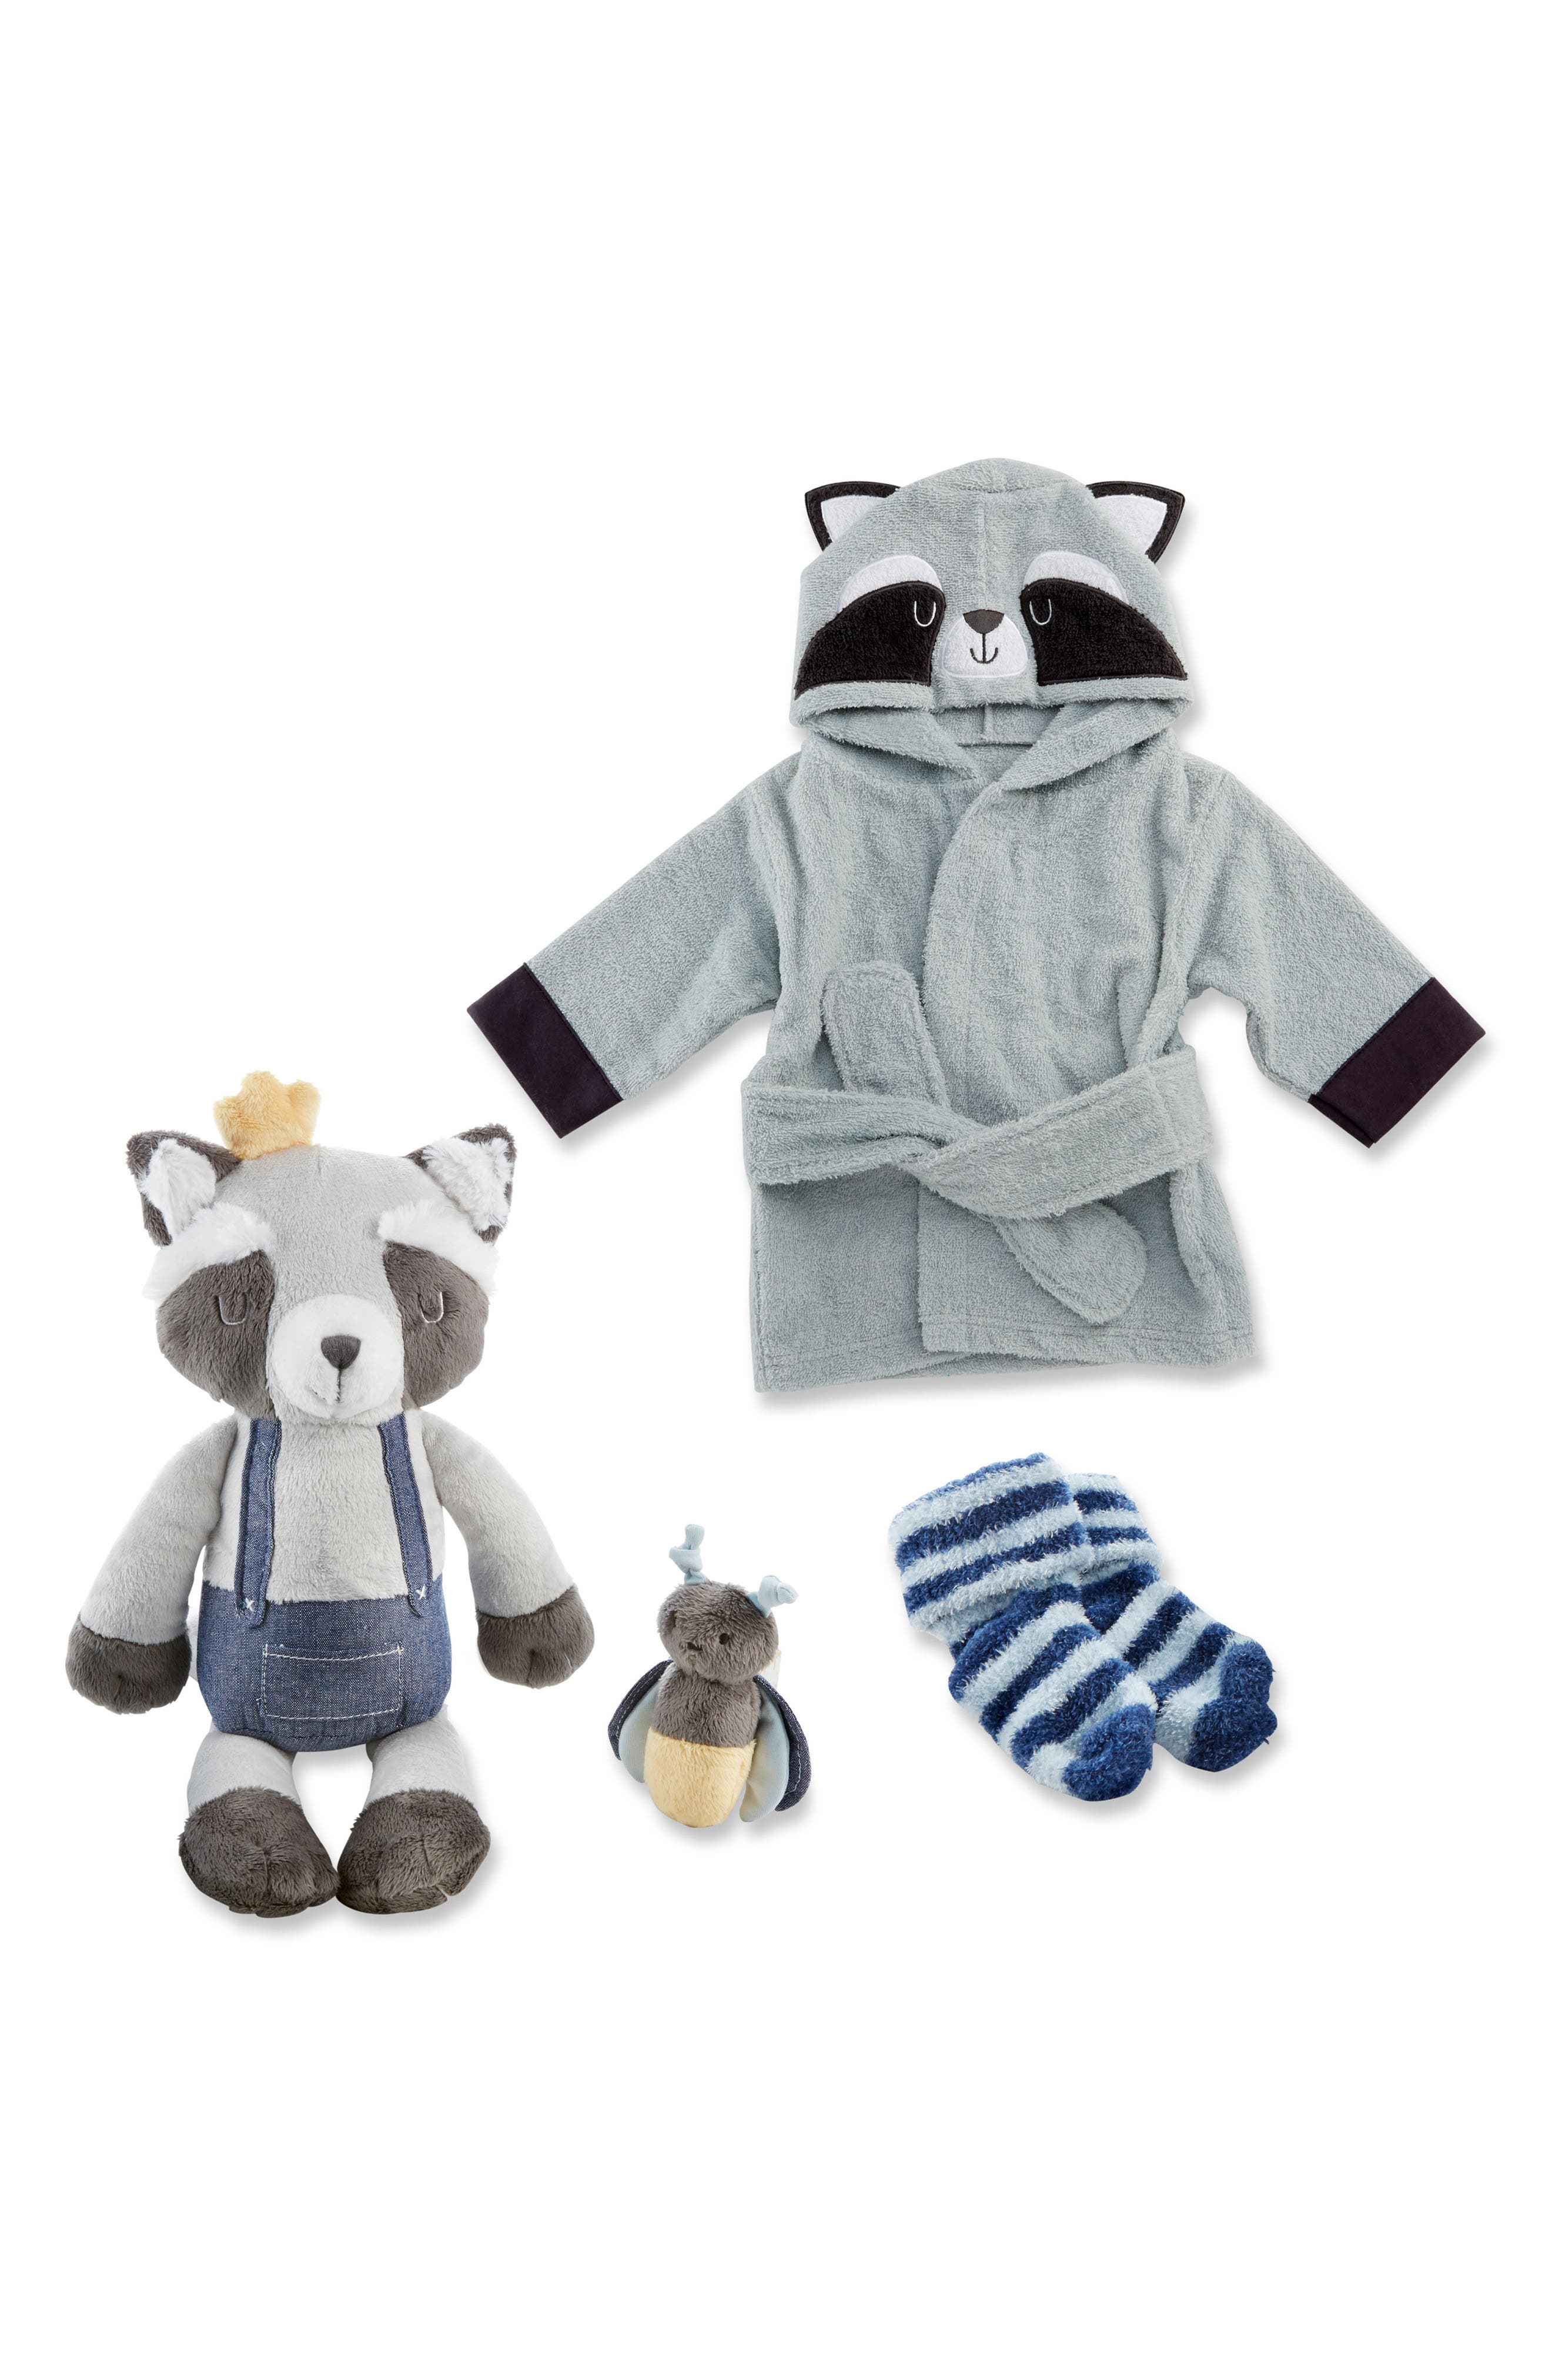 Forest Friends Raccoon Plush Robe, Fuzzy Socks, Stuffed Animal & Rattle Set,                         Main,                         color, 060